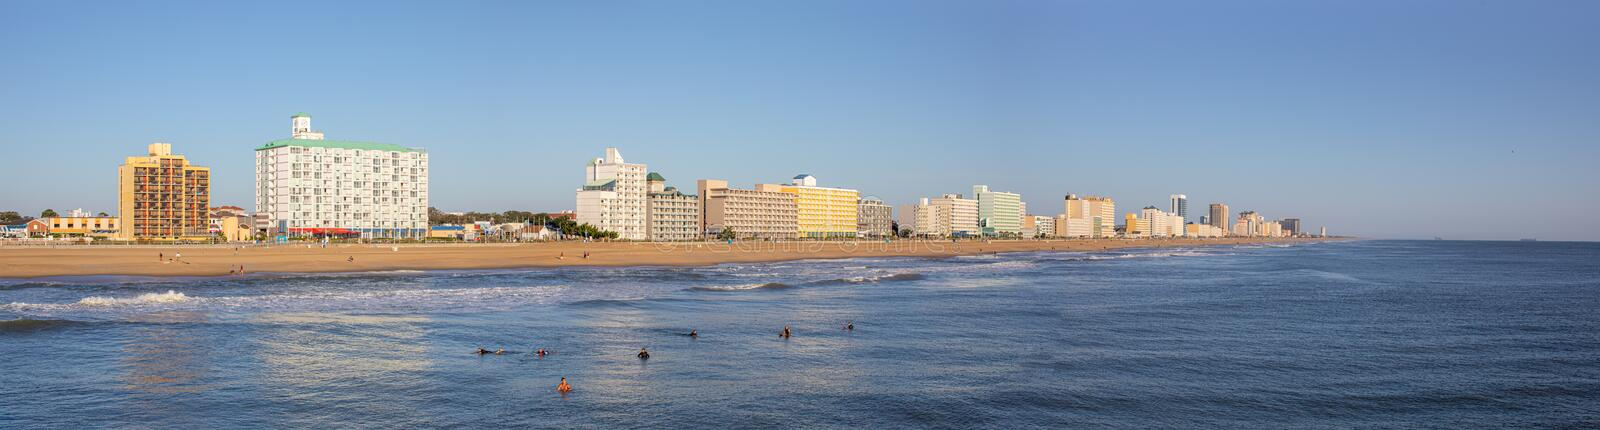 Virginia Beach Skyline royalty-vrije stock foto